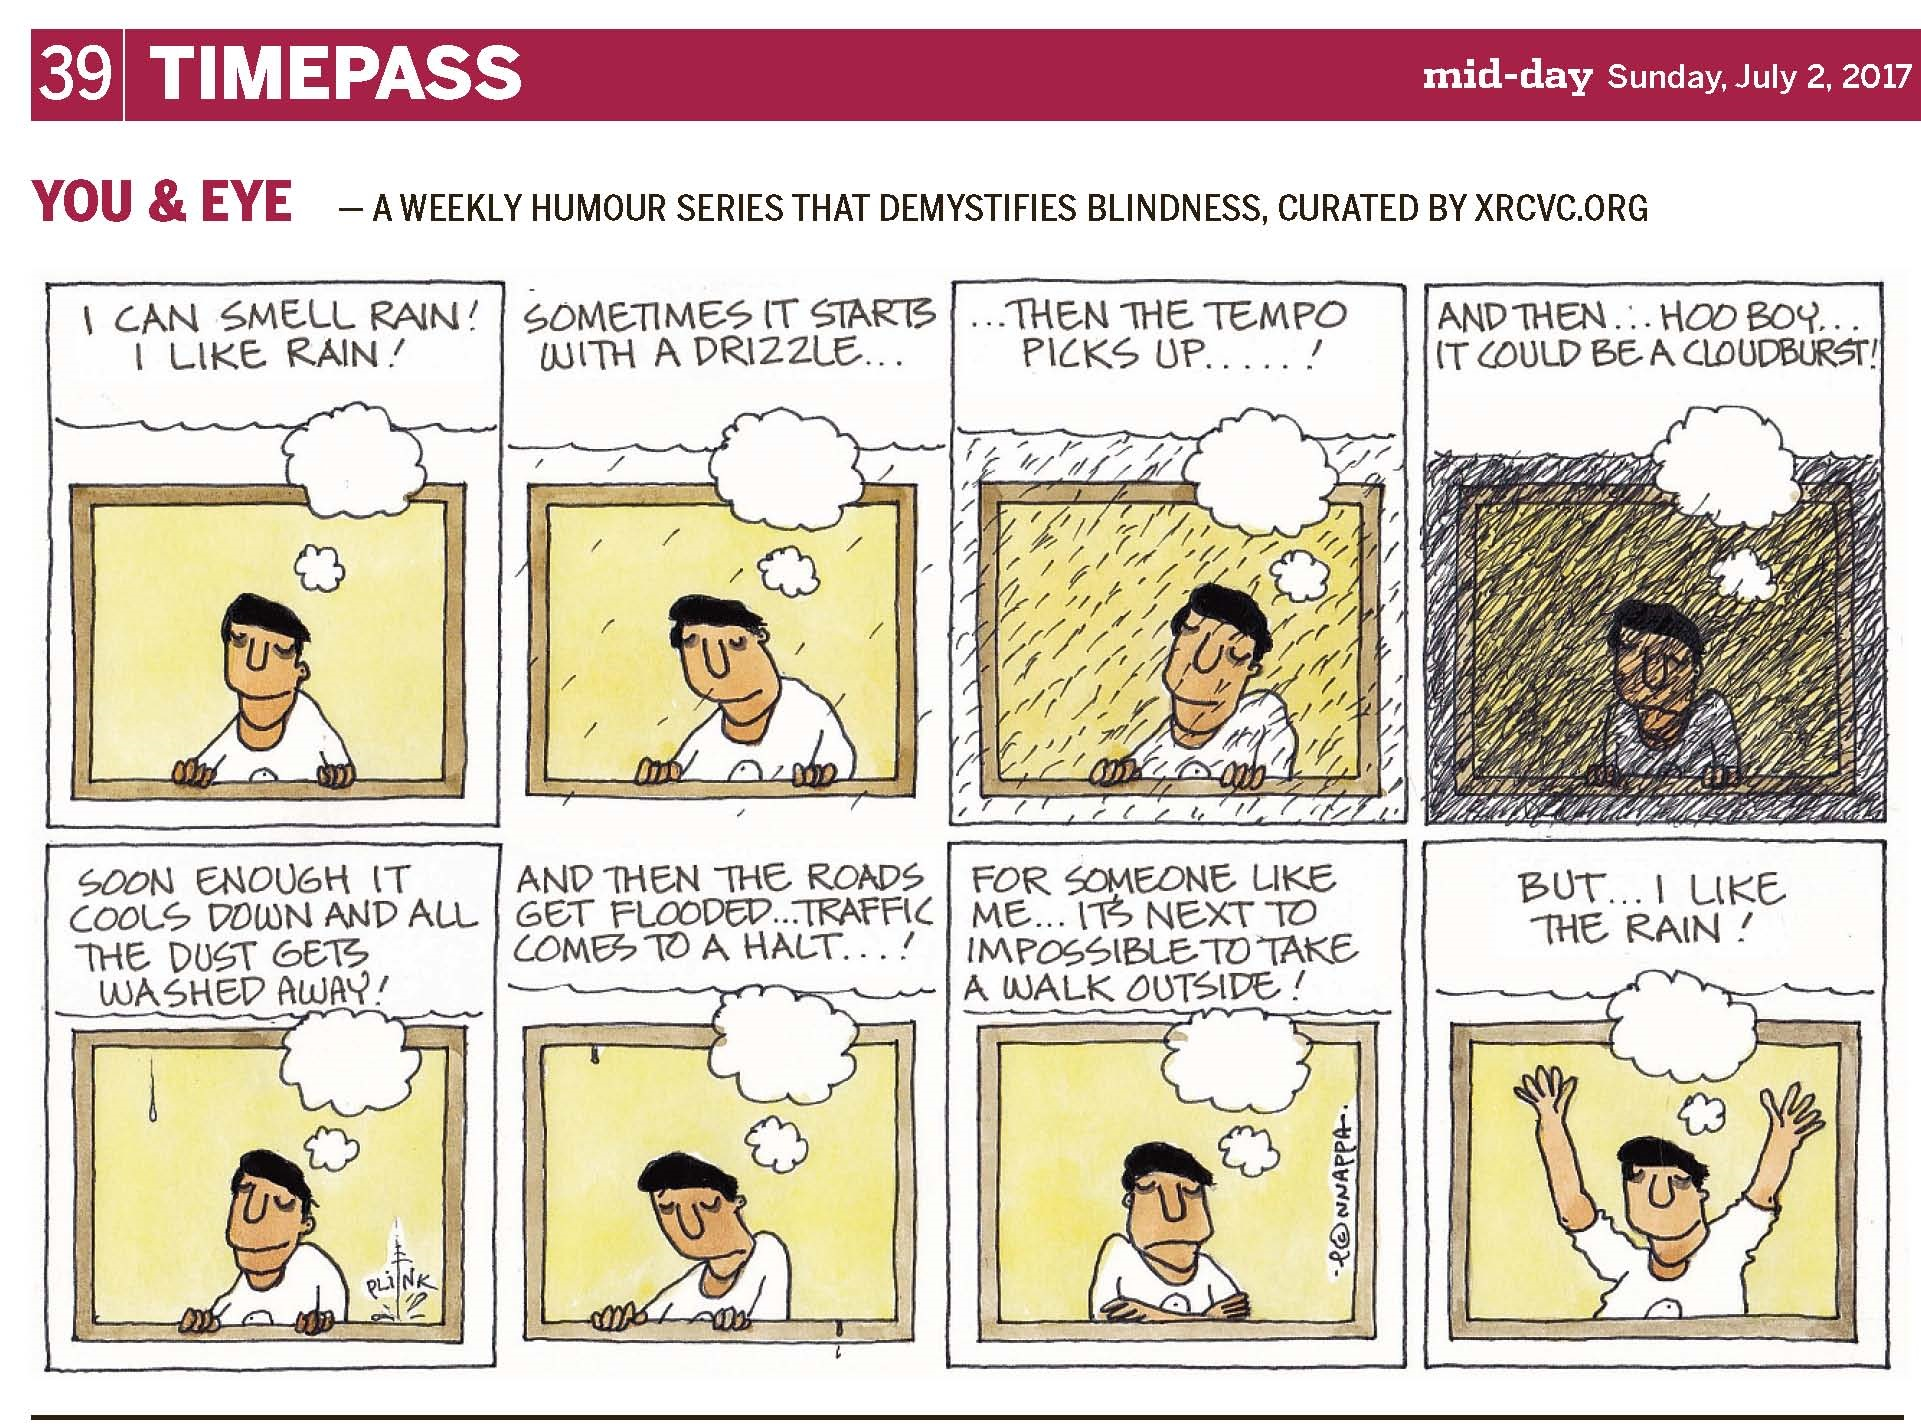 (top-left) 39 | TIMEPASS (top-right) mid-day Sunday, July 2, 2017 